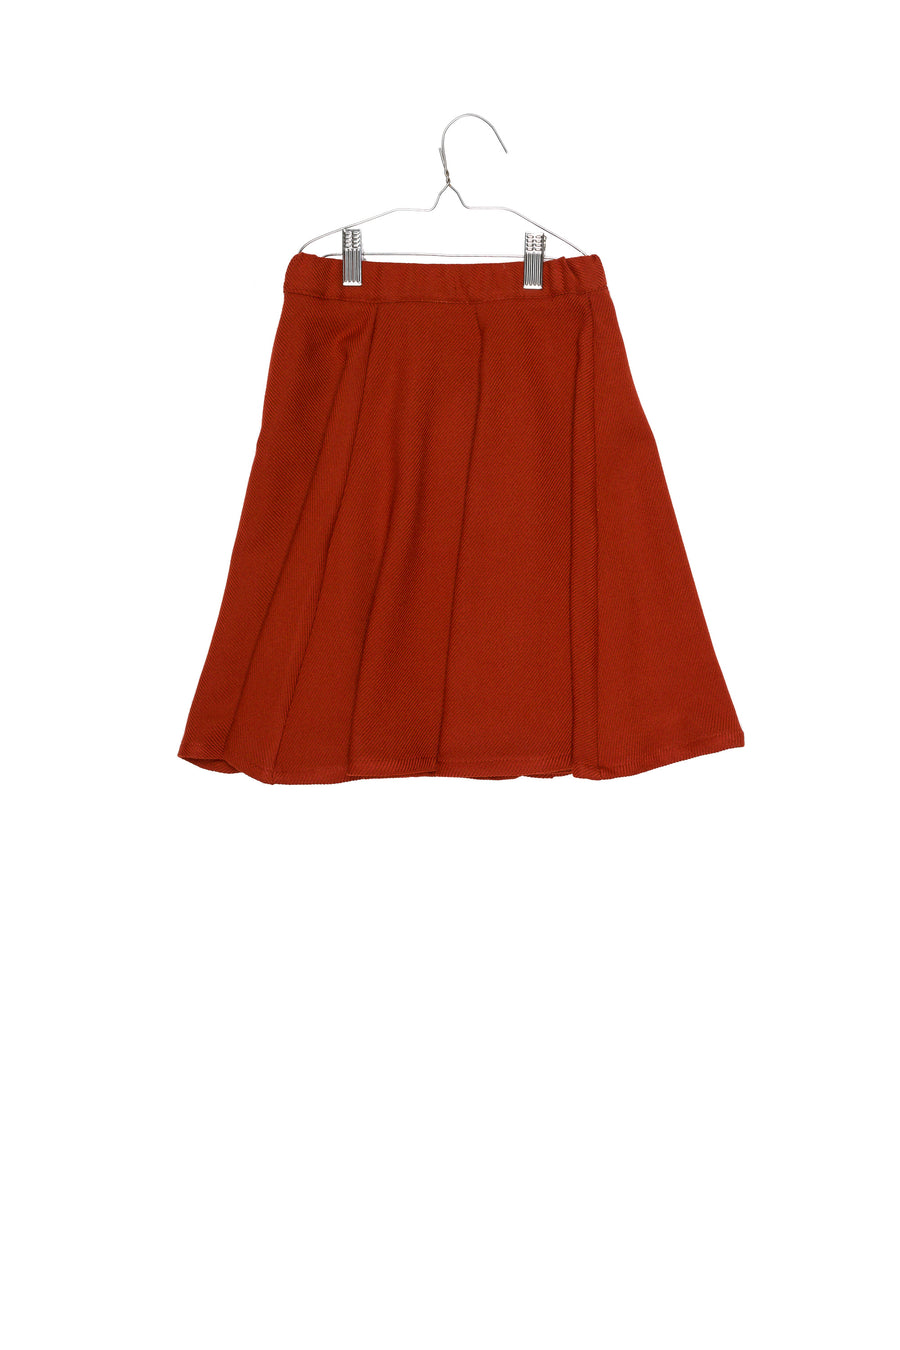 Tangerine Skirt by Motoreta